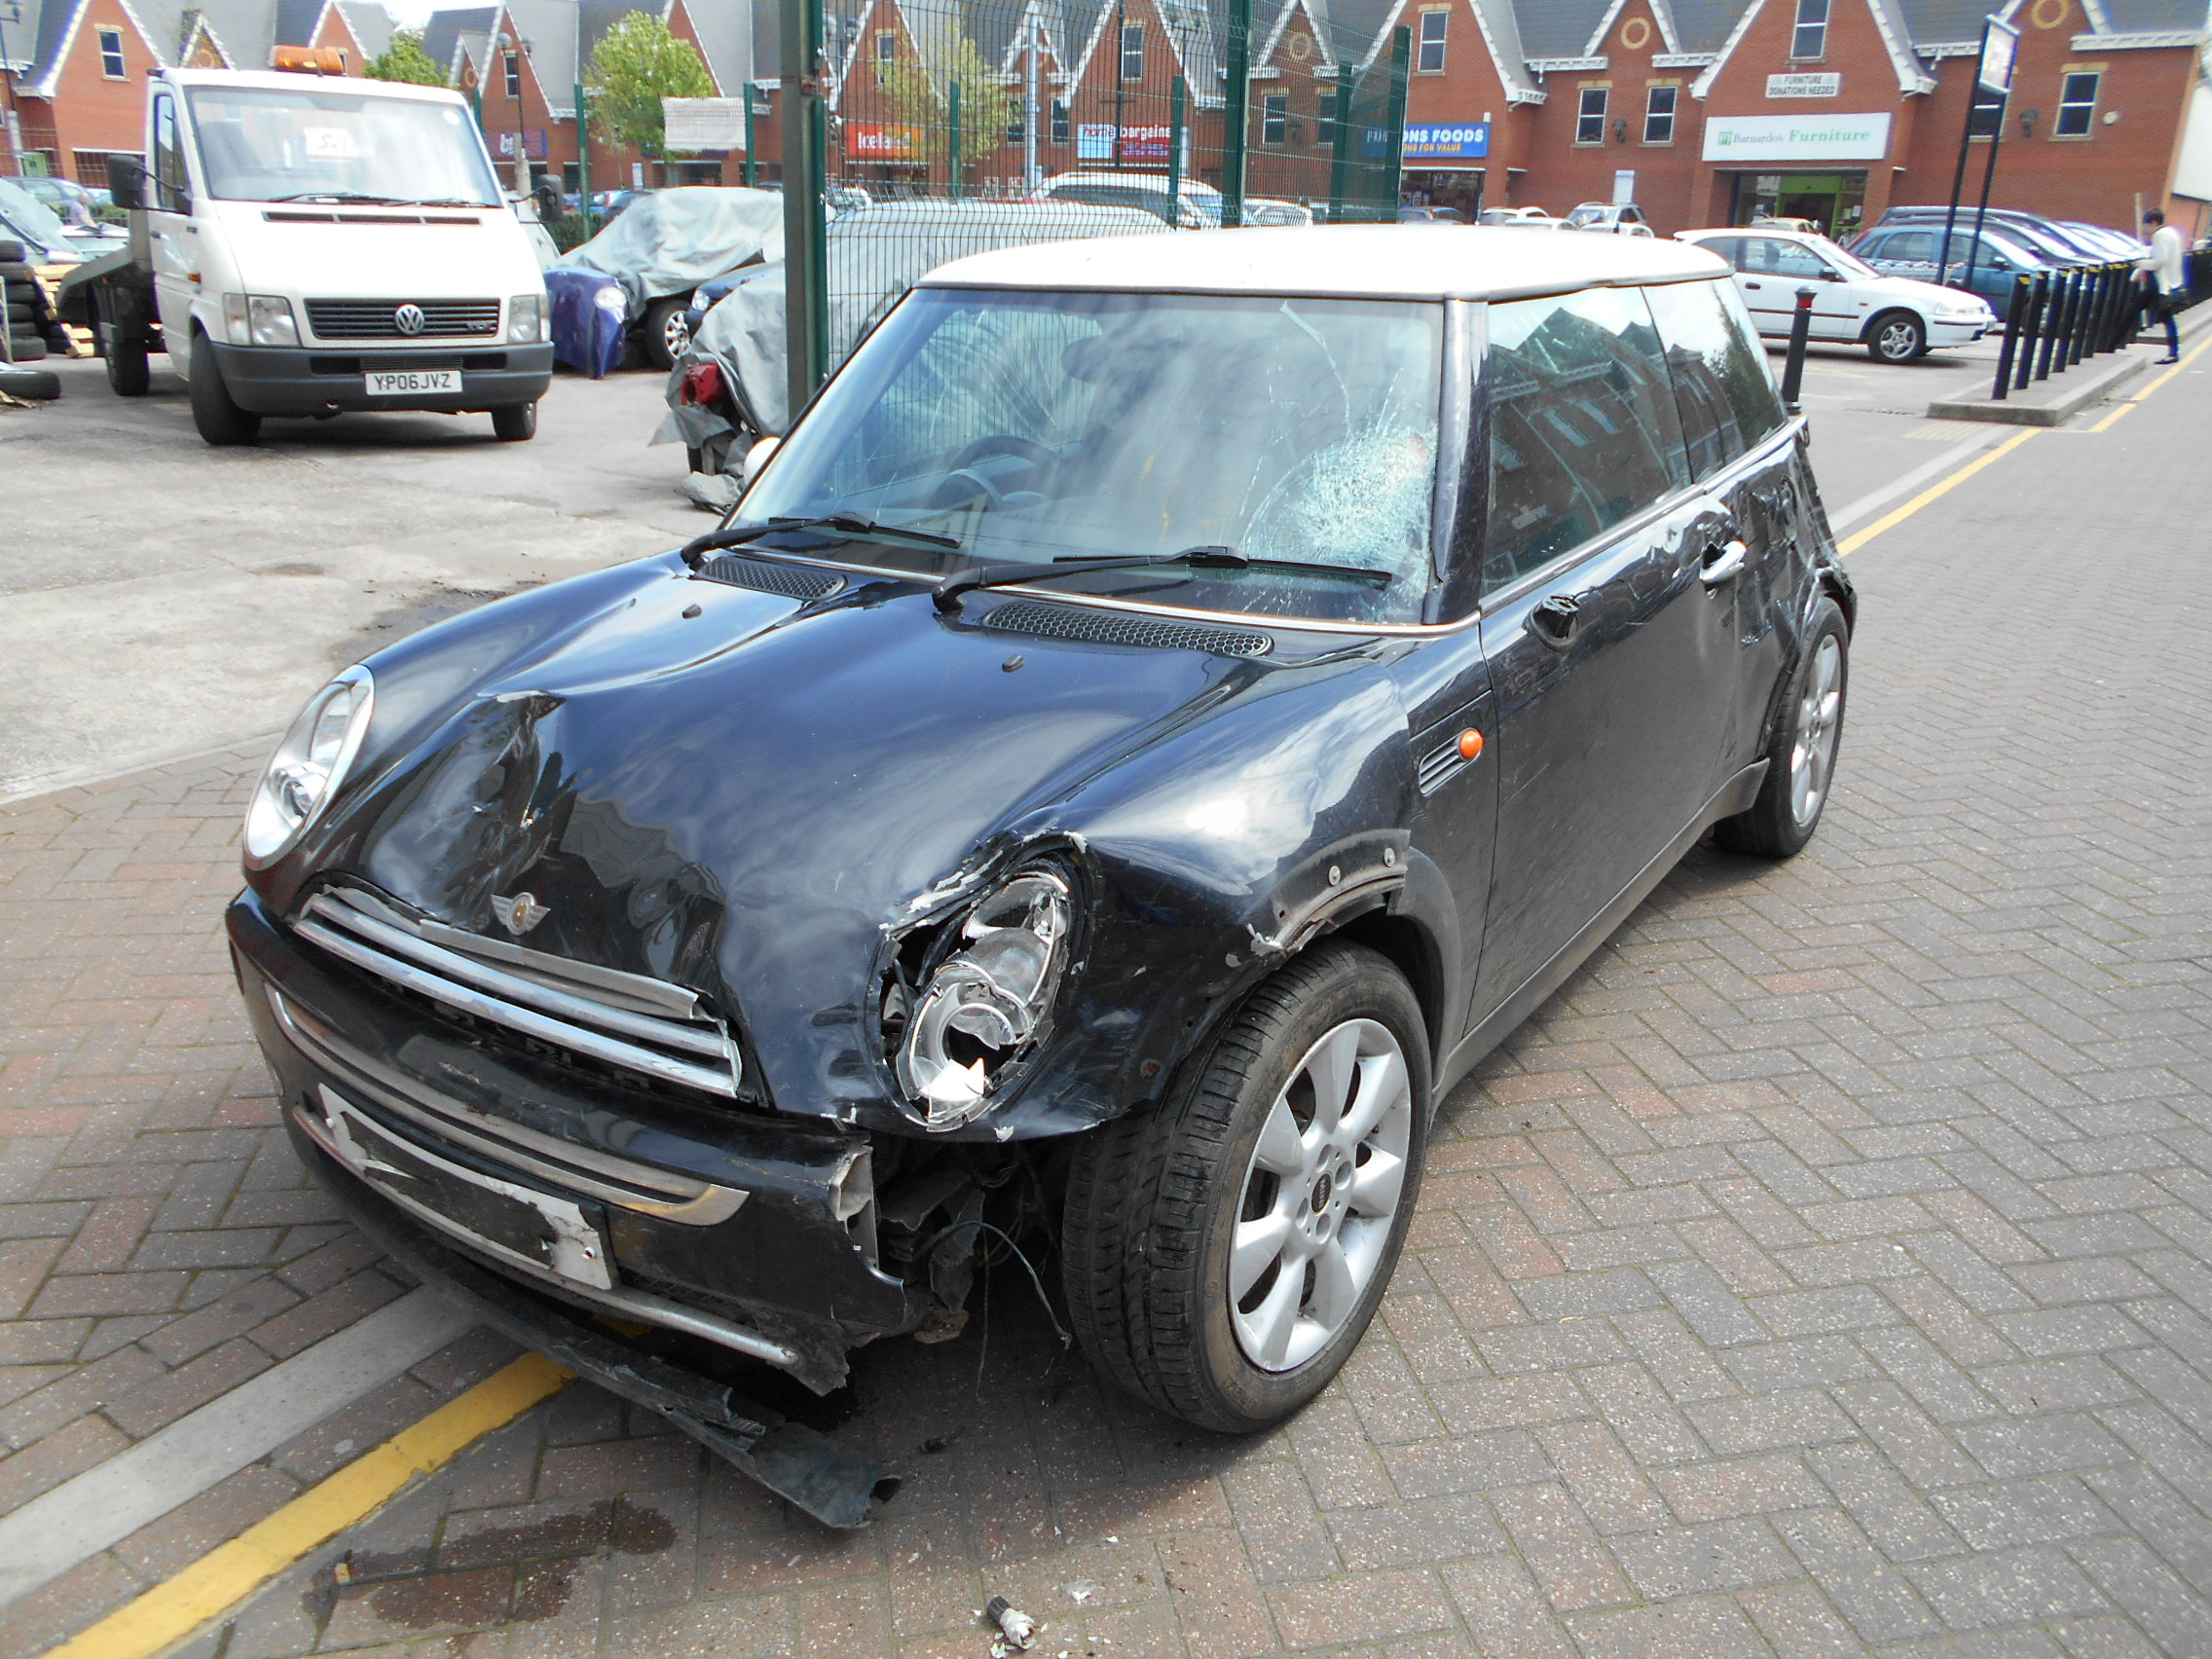 04 Black 1.6 BMW Mini Cooper - 3